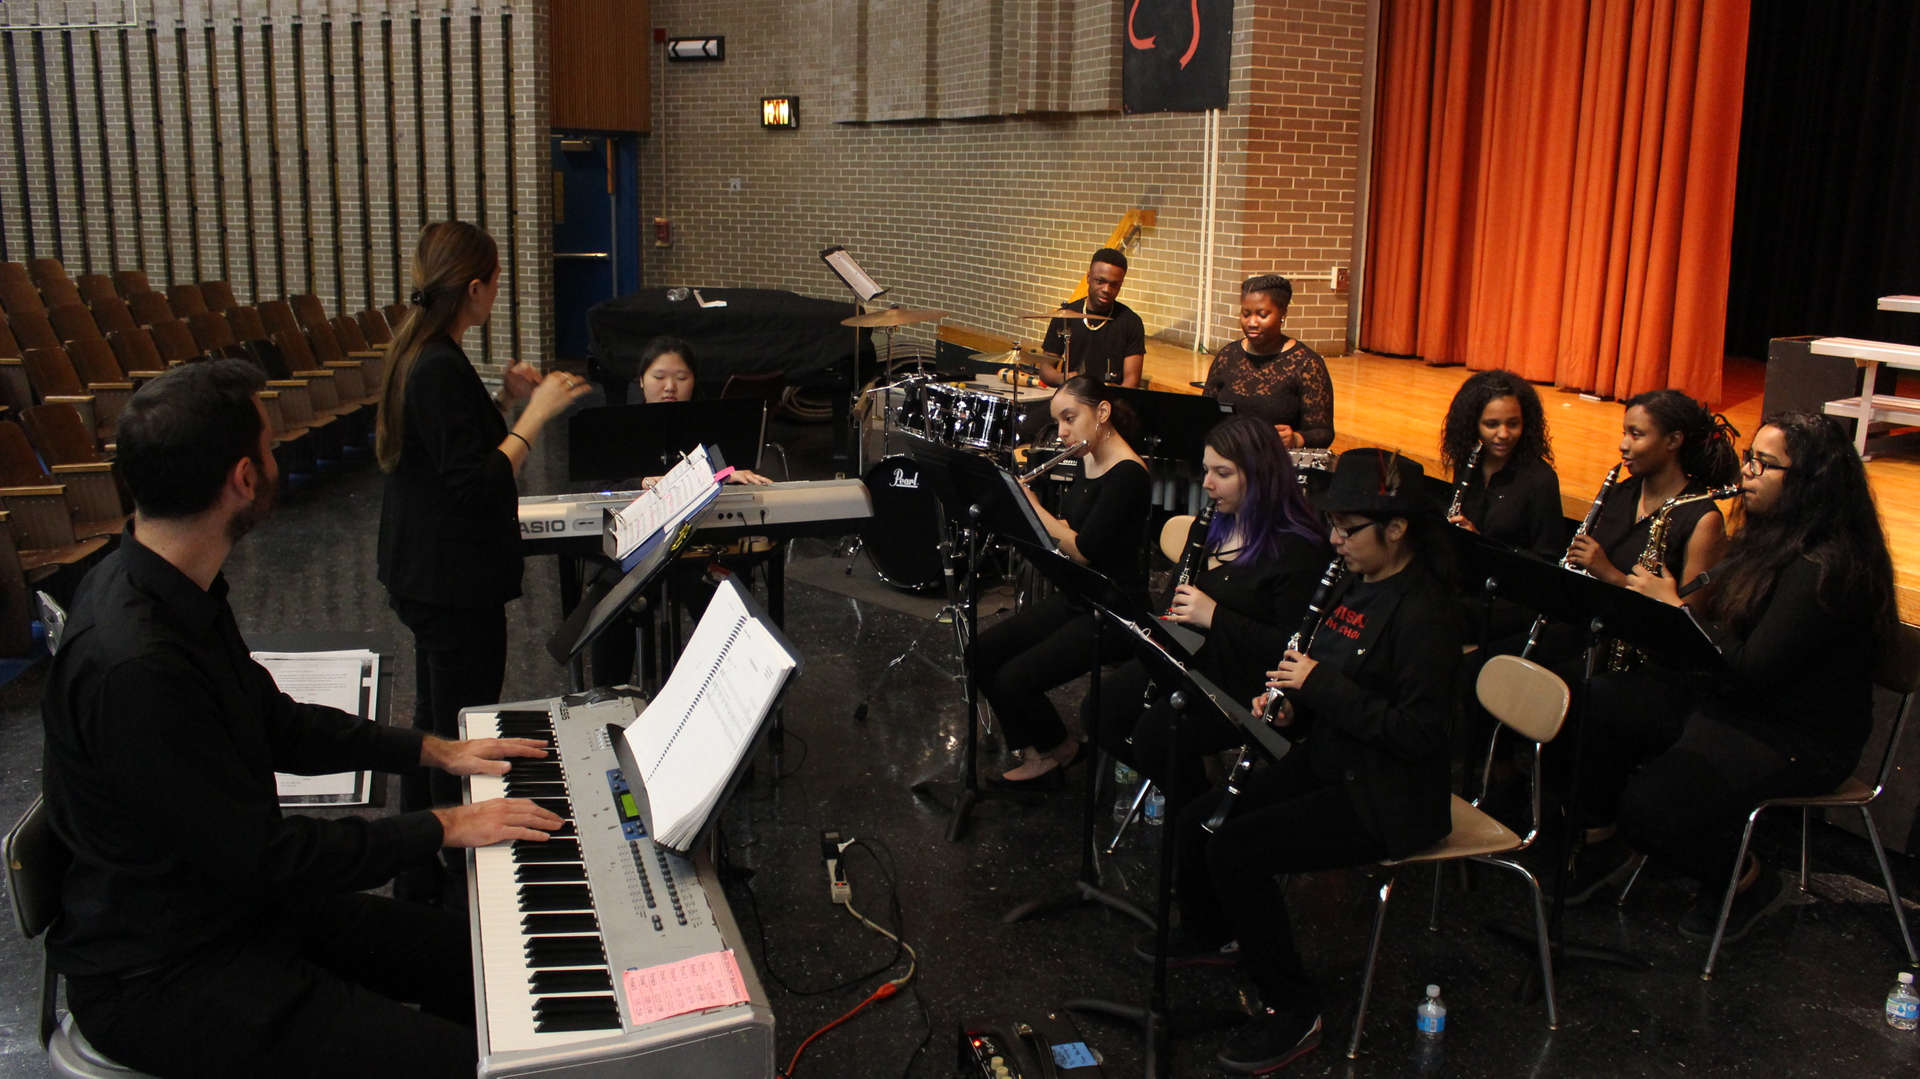 Students Playing Instruments with Teacher Conducting